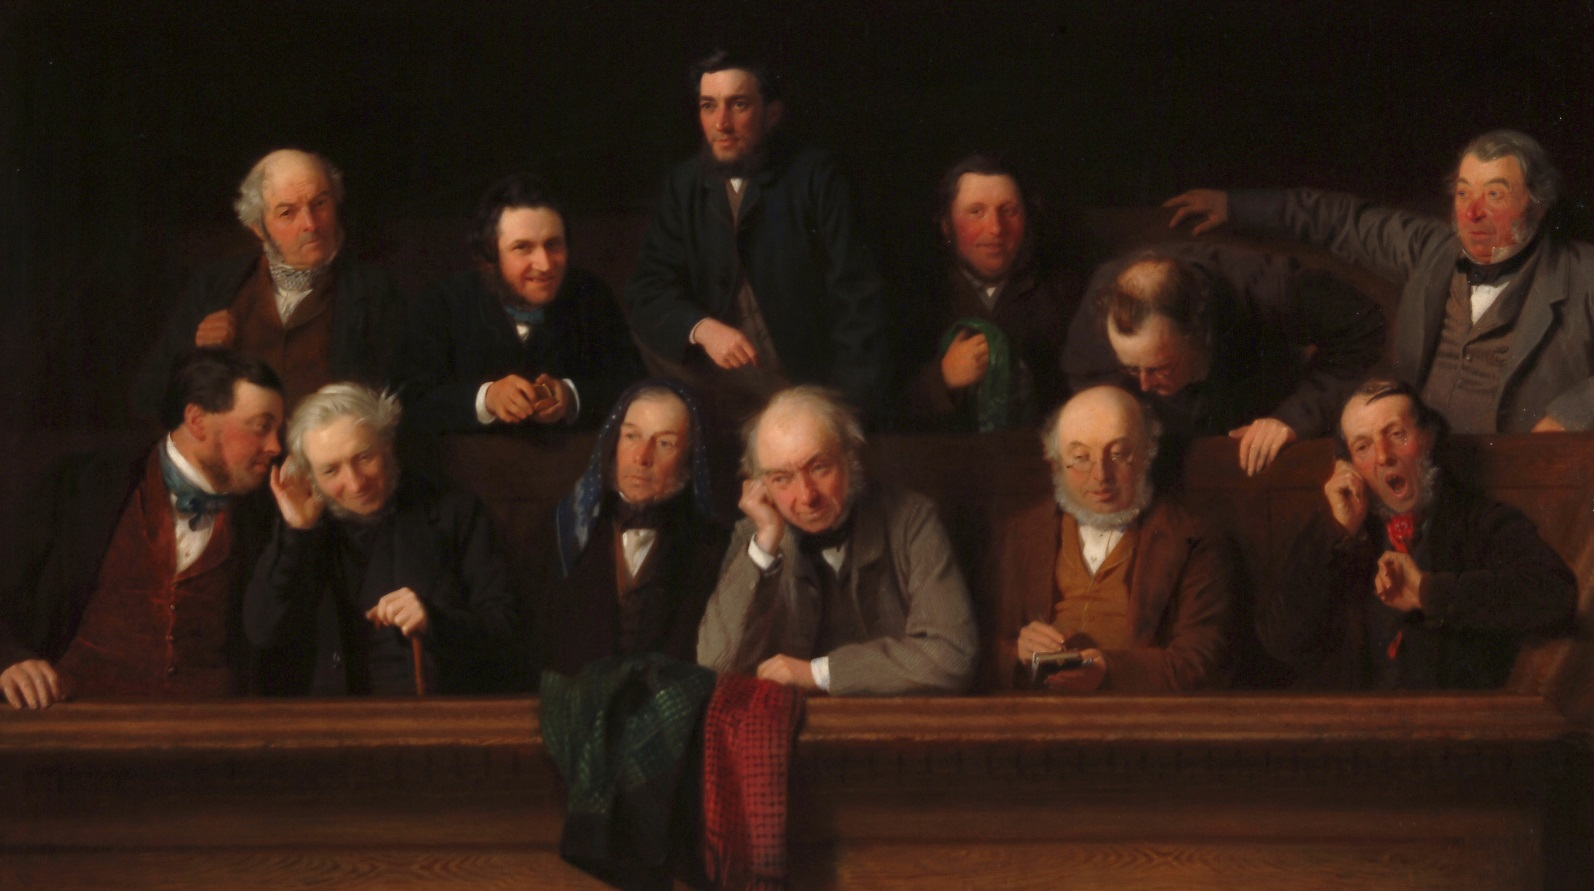 John Morgan, The Jury, 1861